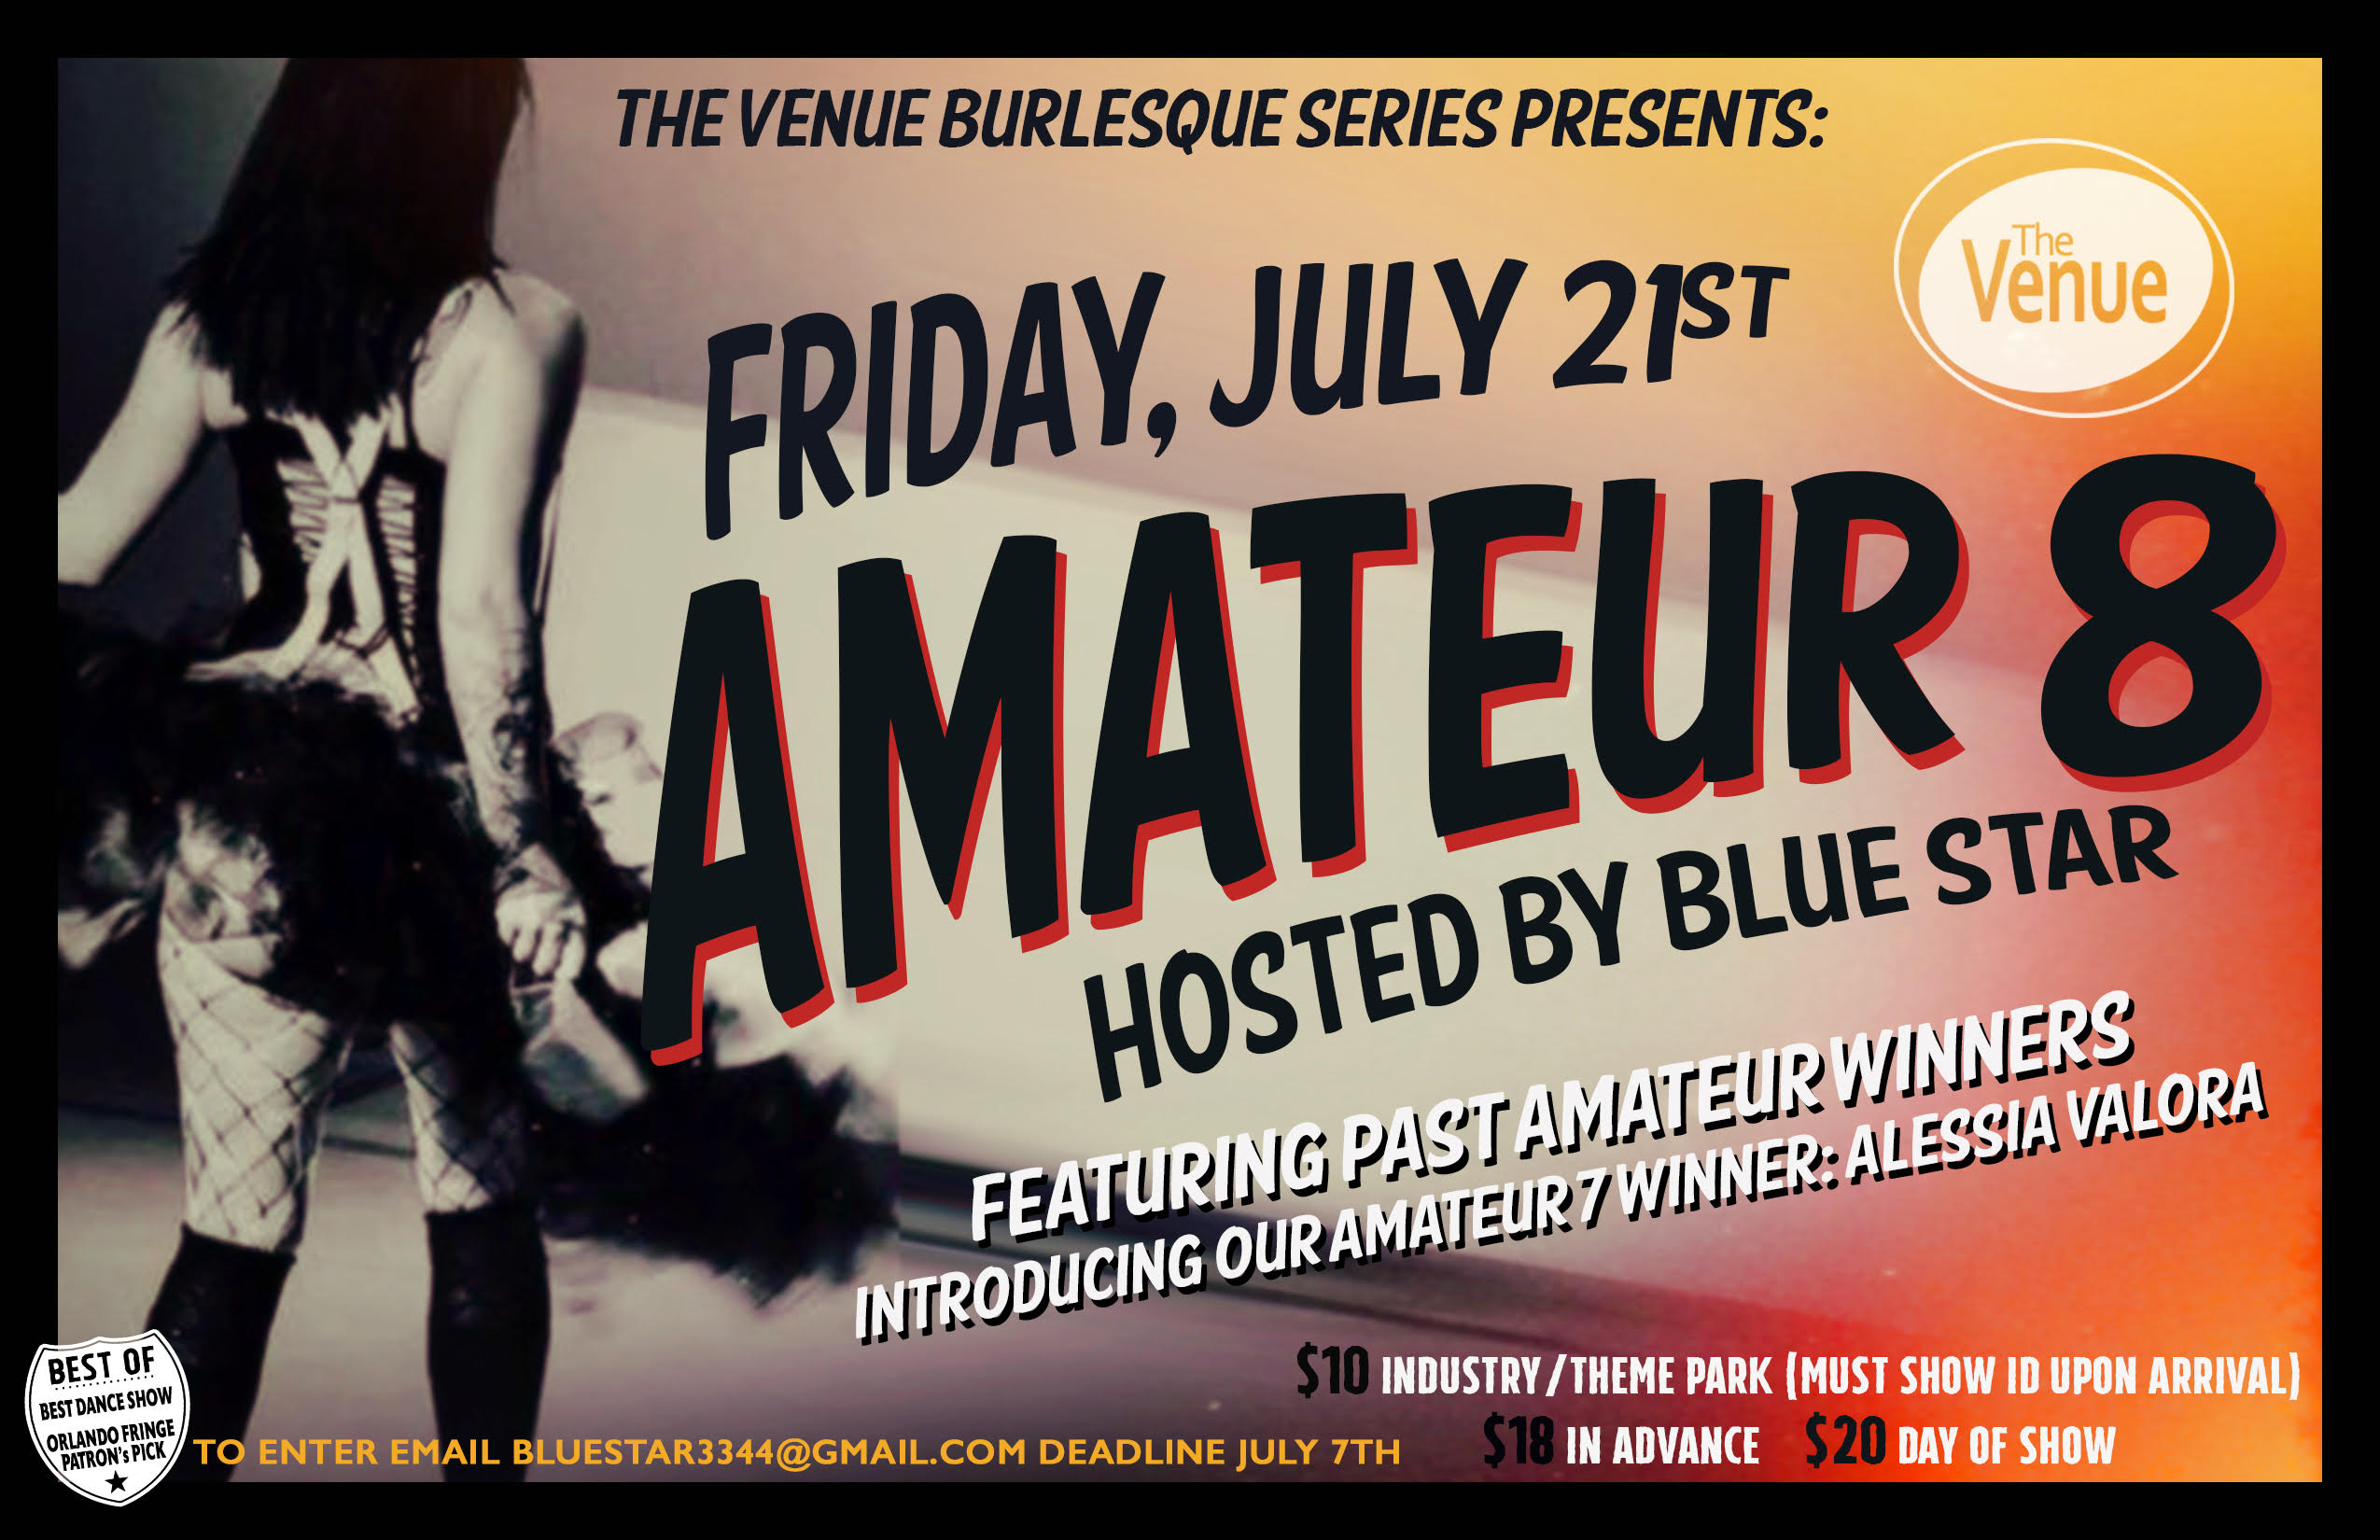 The Venue Burlesque Series Presents   Amateur 8 Hosted by BlueStar Tickets  | The Venue | Orlando, FL | Fri, Jul 21, 2017 at 9pm | Orlando Weekly